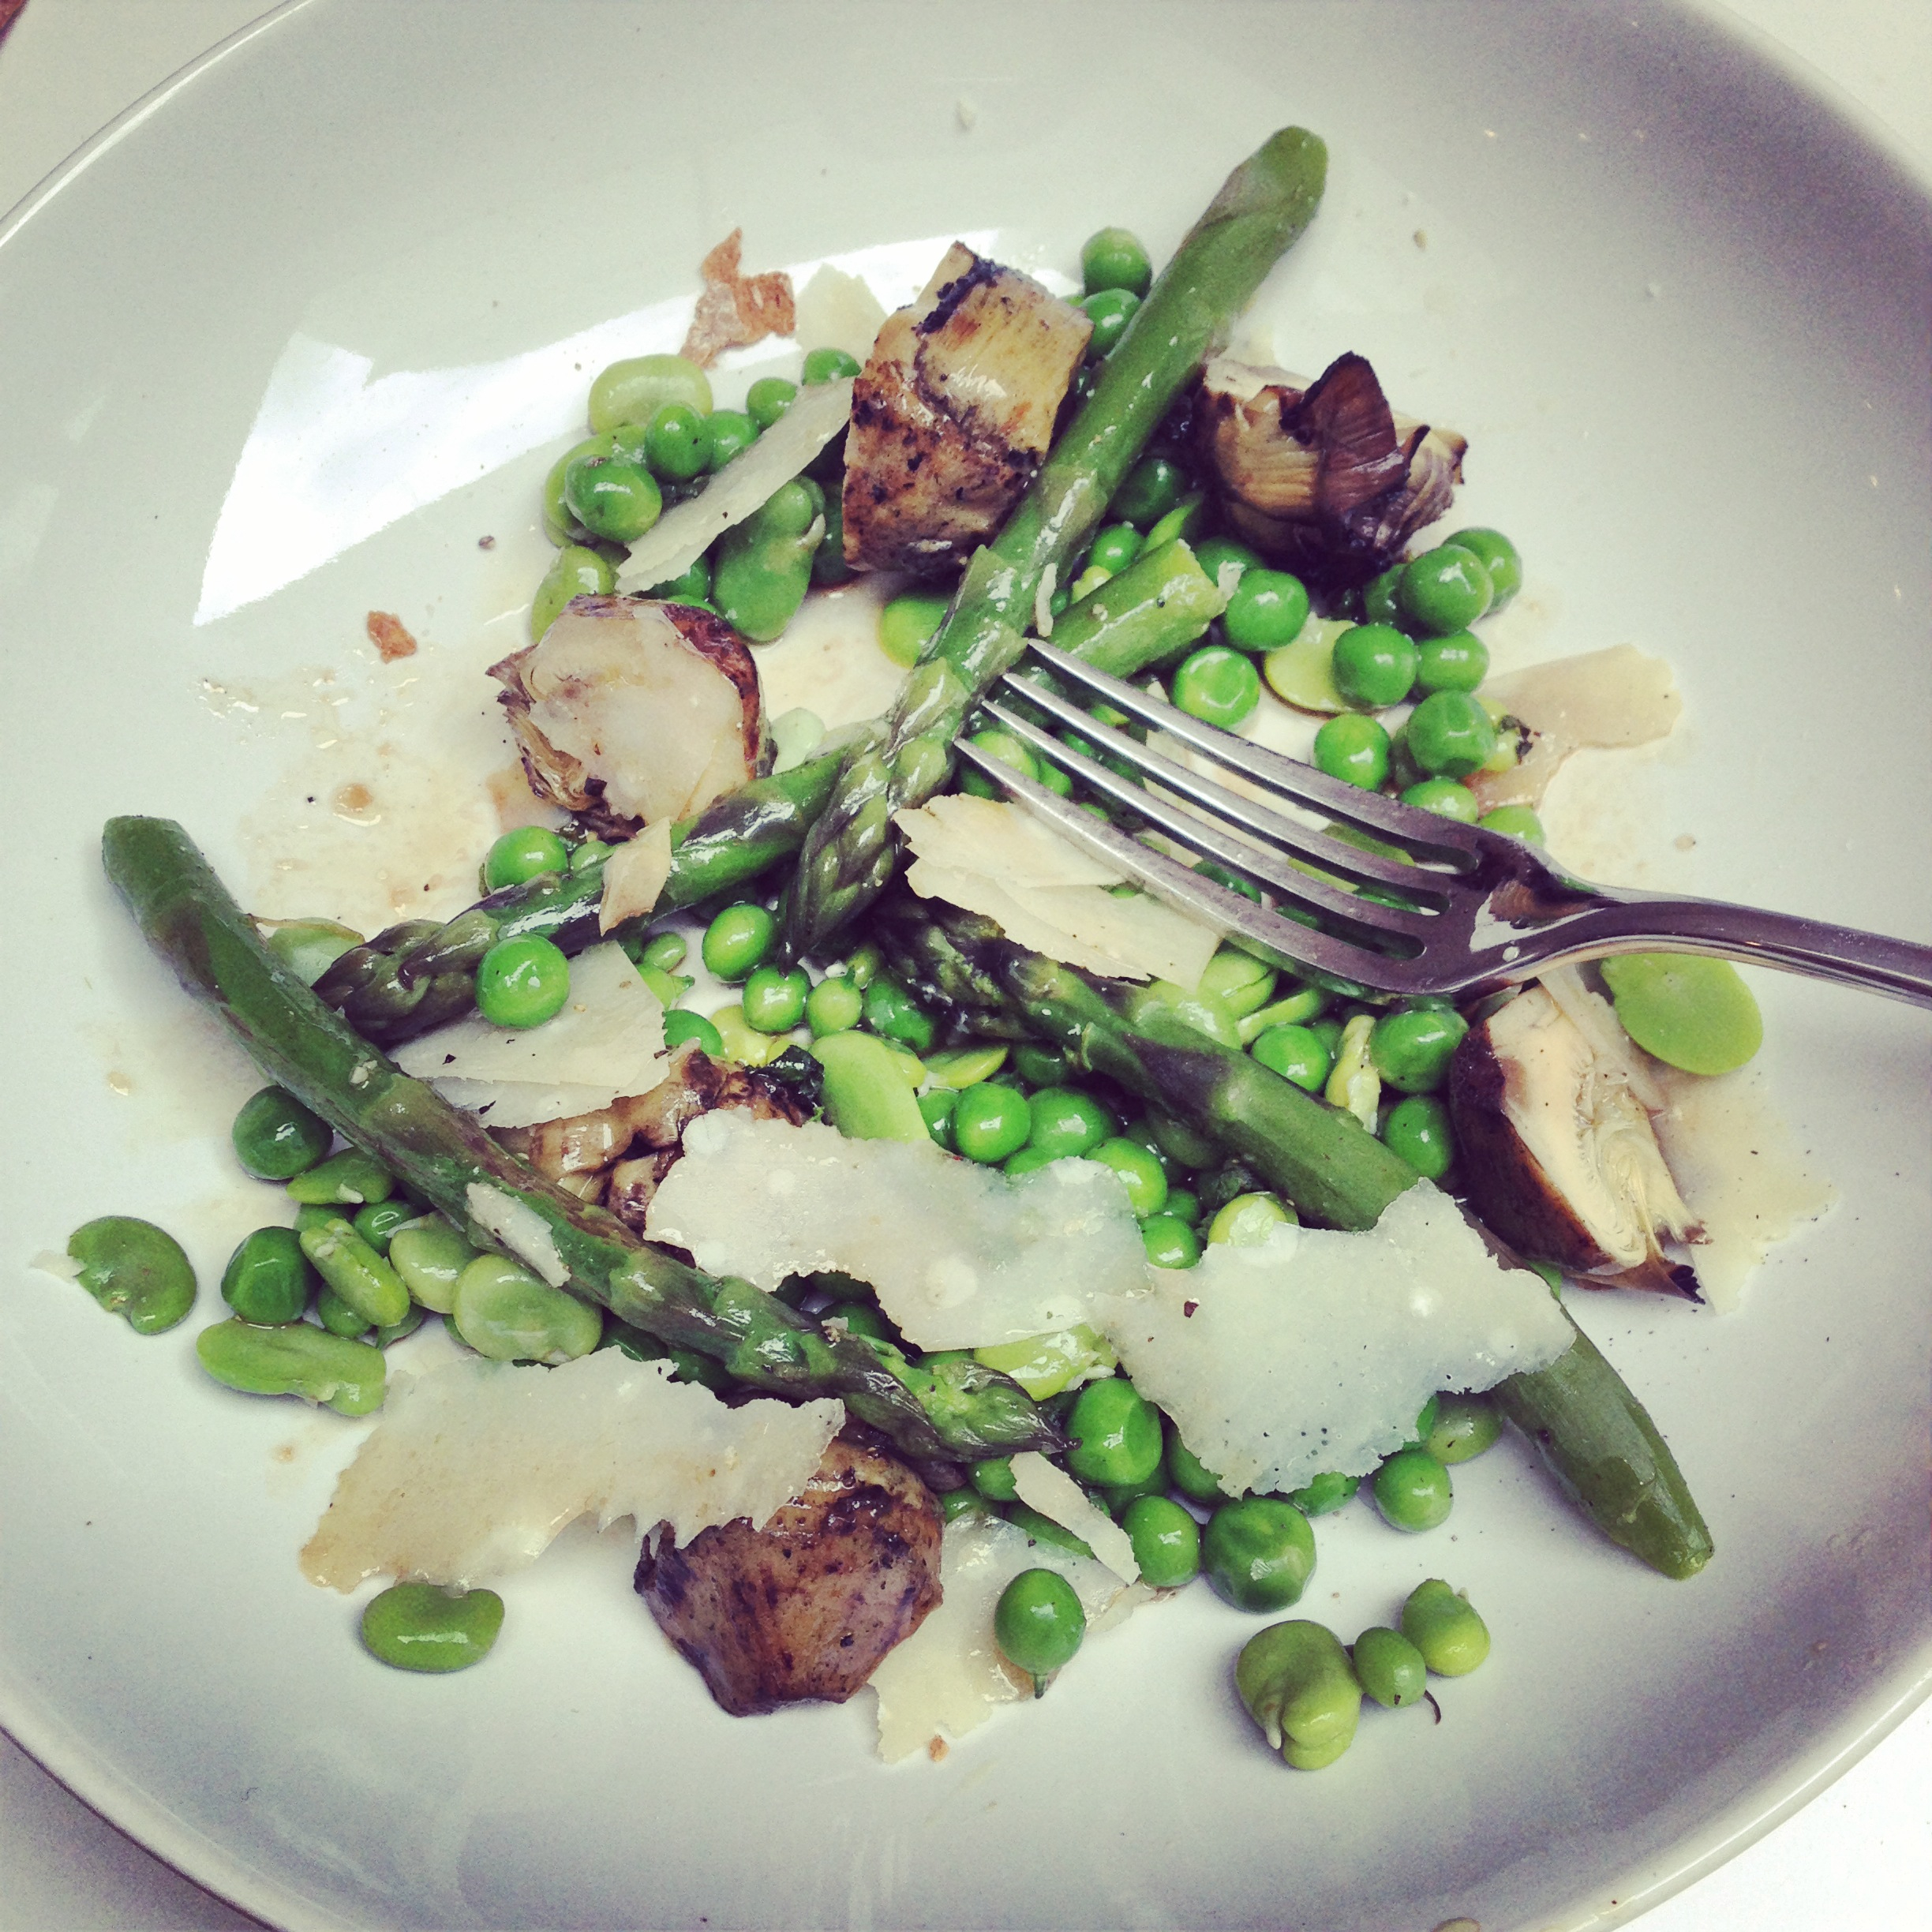 Salad of asparagus, artichoke, peas, beans and pecorino